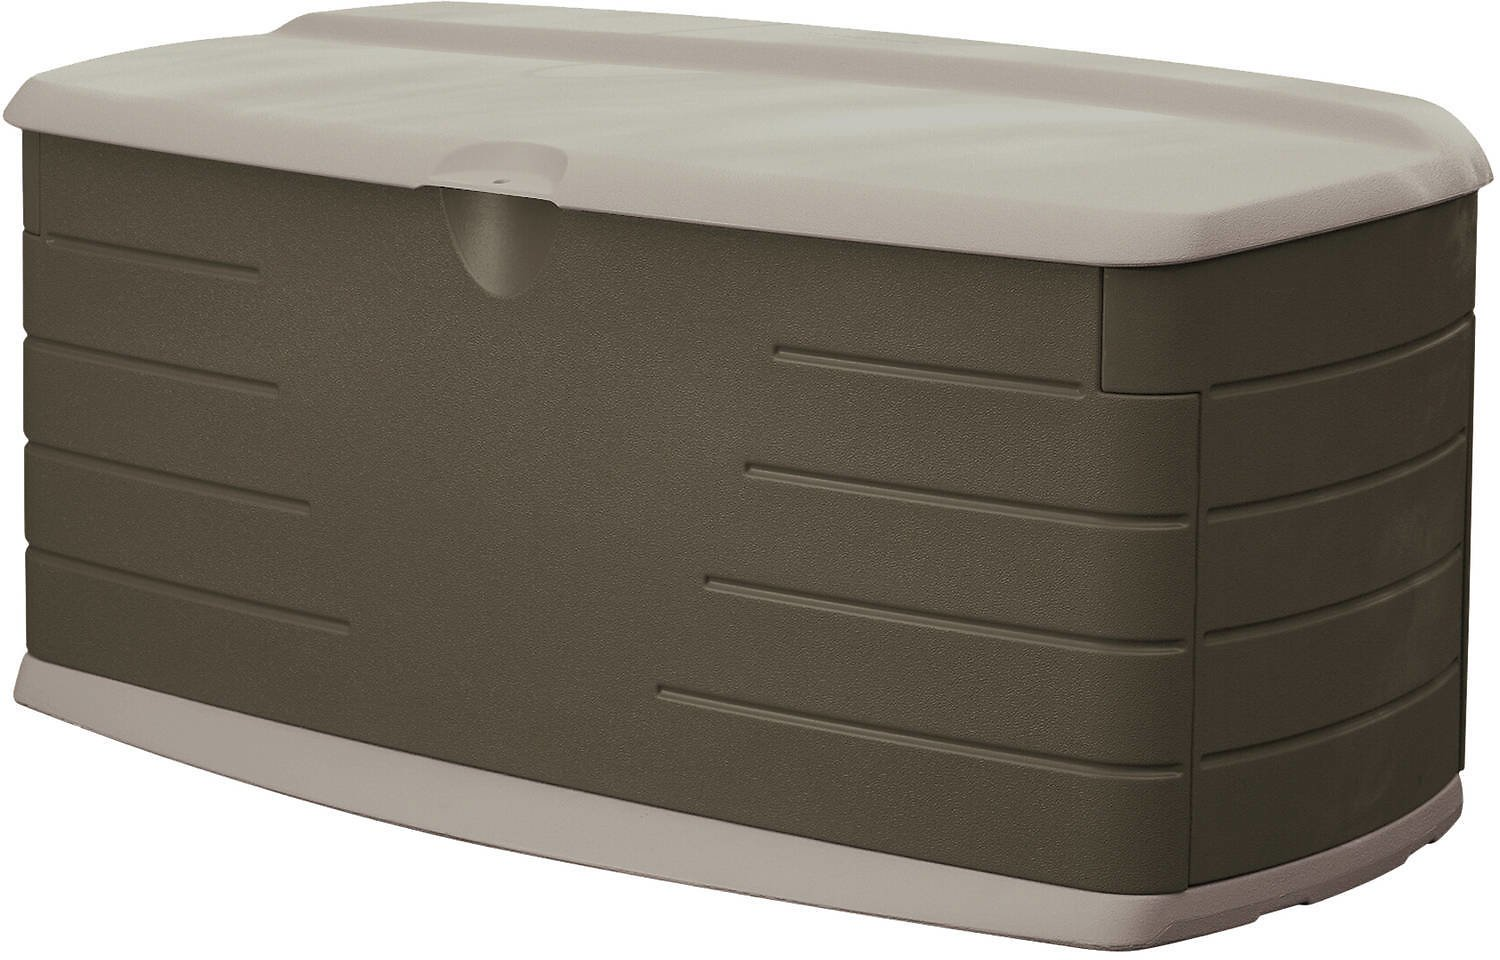 Rubbermaid Large Deck Box with Seat + F/S